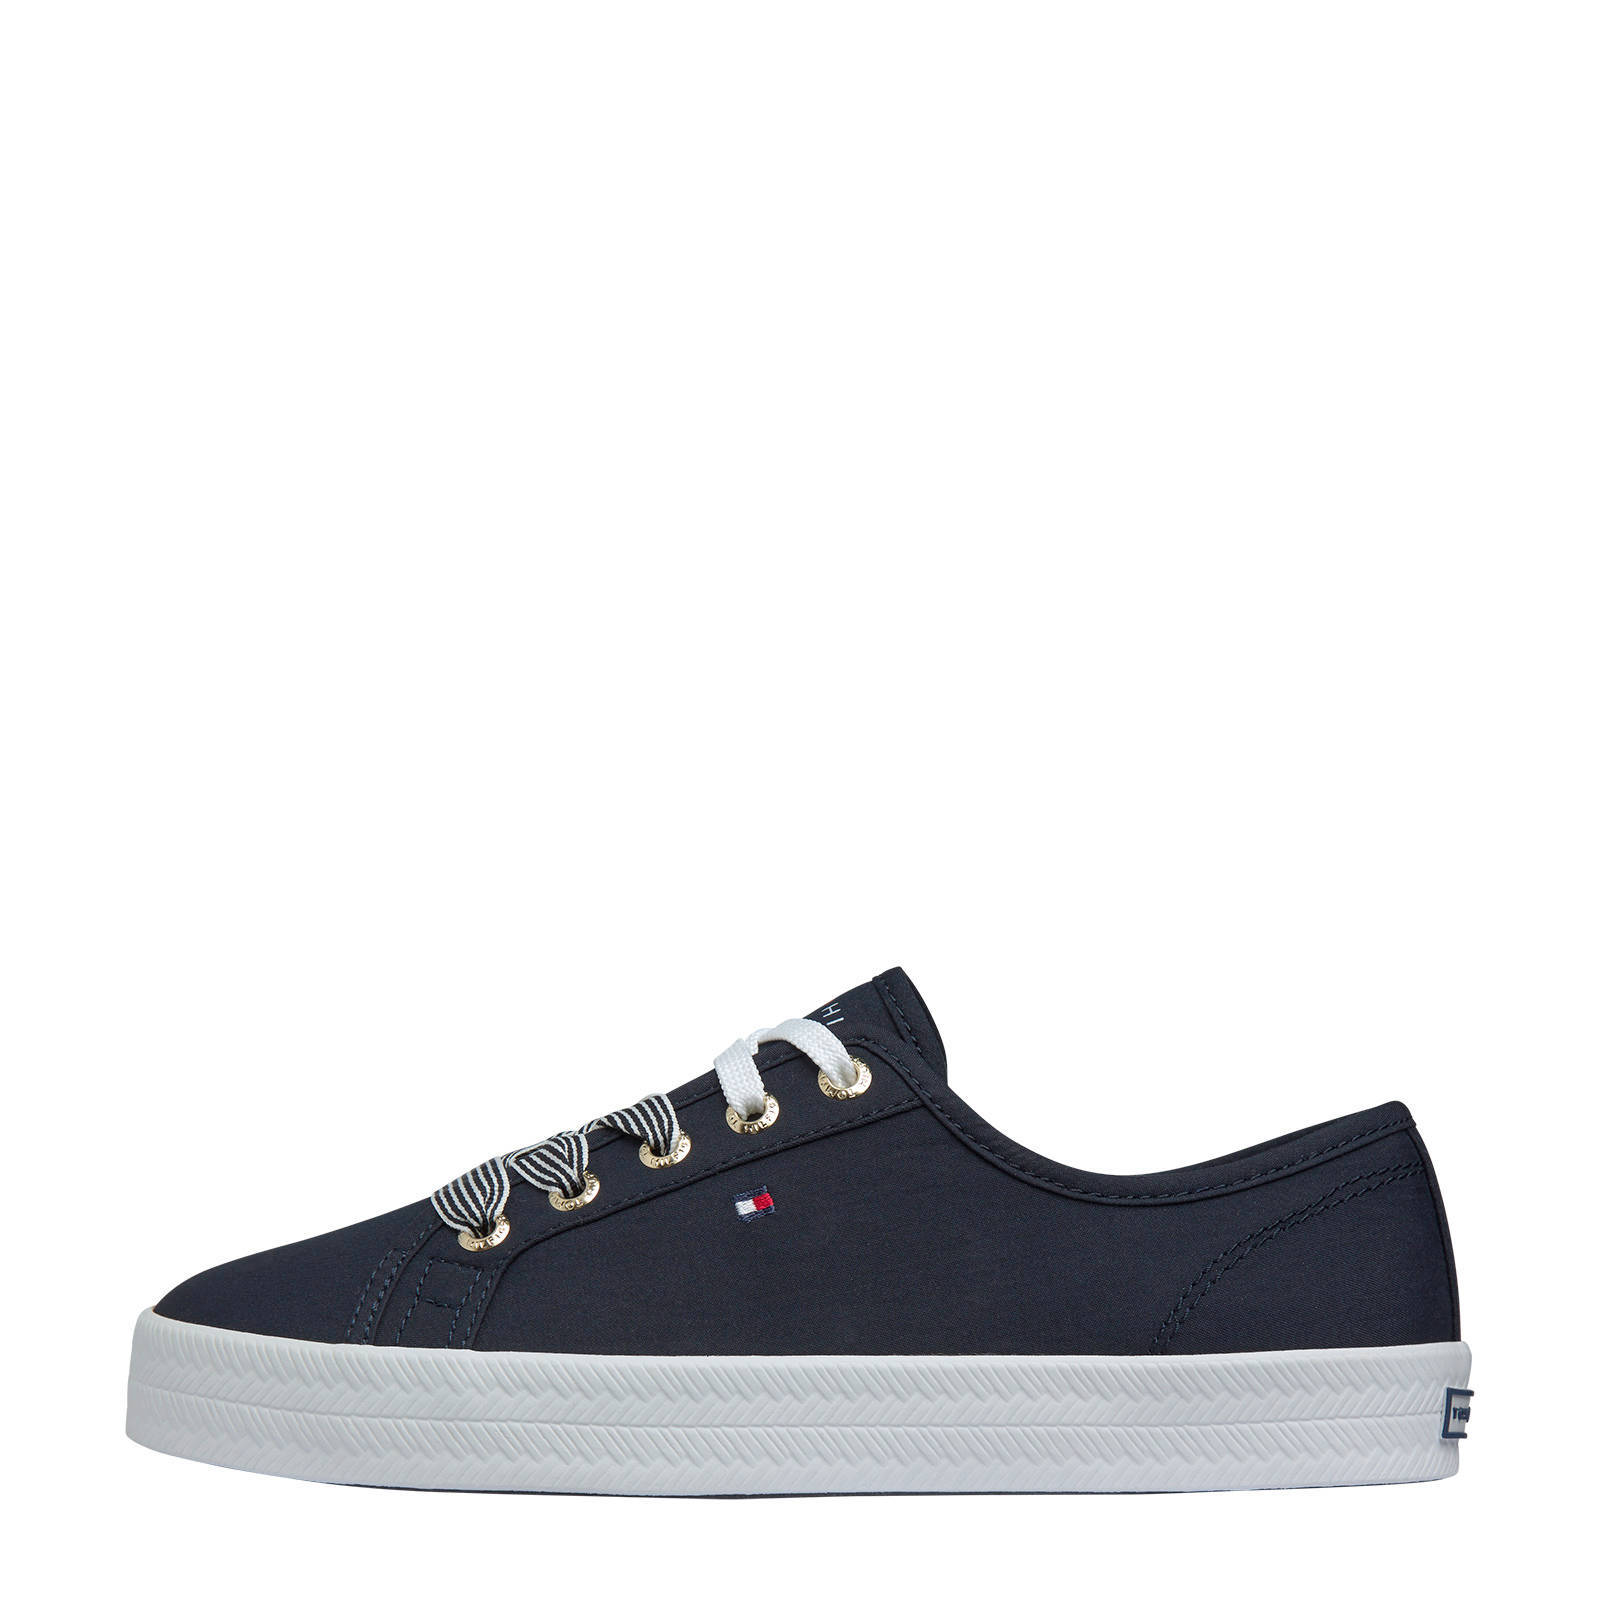 Tommy Hilfiger Essential Nautical sneakers donkerblauw online kopen